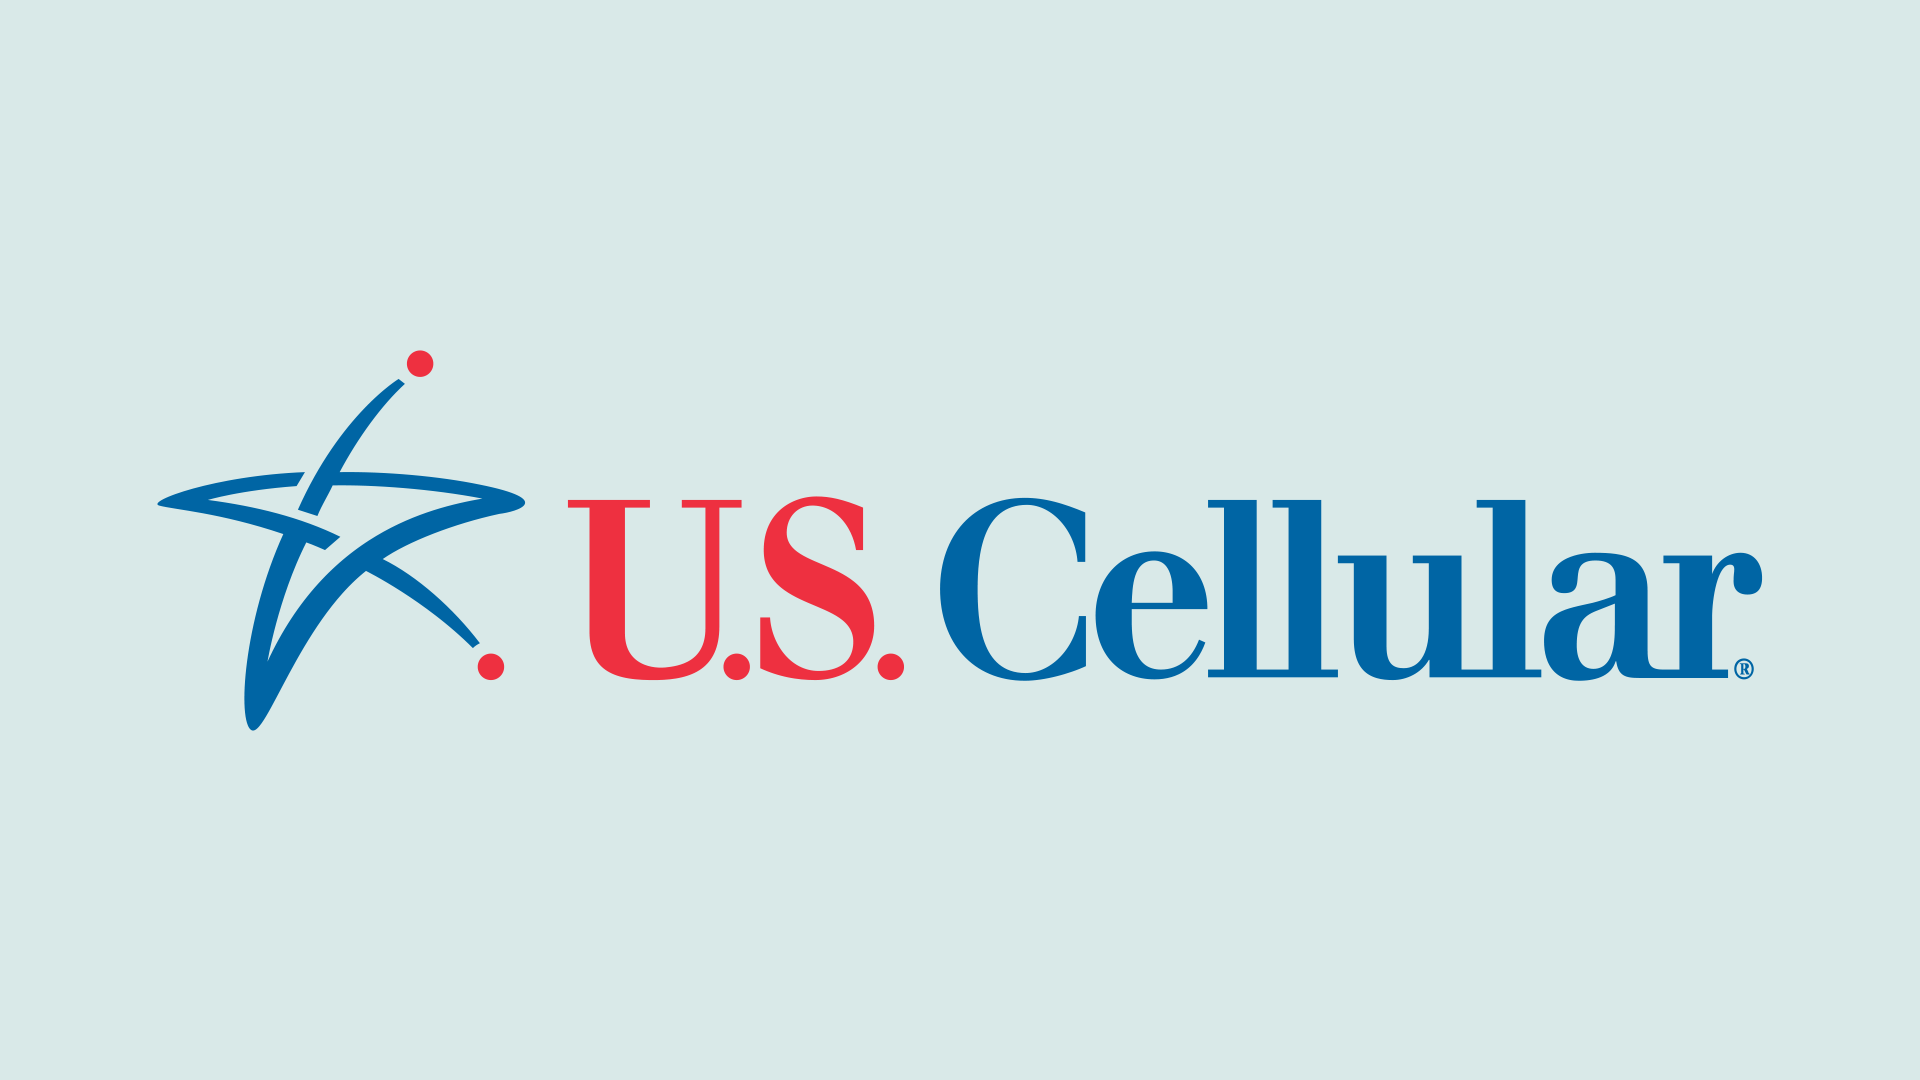 U.S. Cellular Title Image with Logo